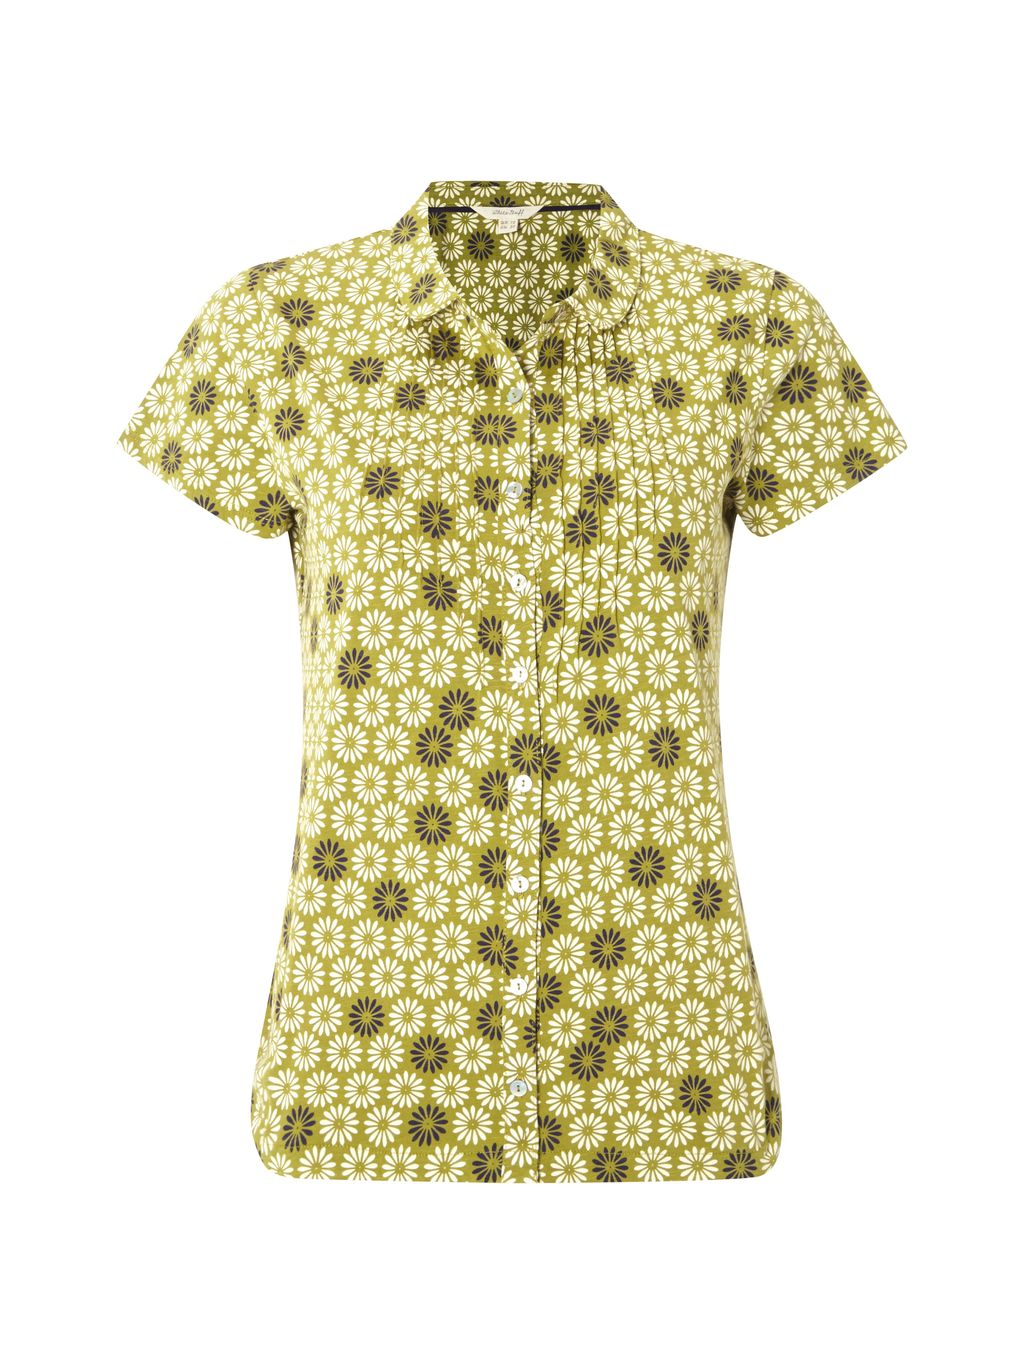 Daisy Jersey Shirt, Green - neckline: shirt collar/peter pan/zip with opening; style: shirt; secondary colour: primrose yellow; predominant colour: khaki; occasions: casual; length: standard; fibres: cotton - 100%; fit: body skimming; sleeve length: short sleeve; sleeve style: standard; texture group: cotton feel fabrics; pattern type: fabric; pattern: florals; multicoloured: multicoloured; season: s/s 2016